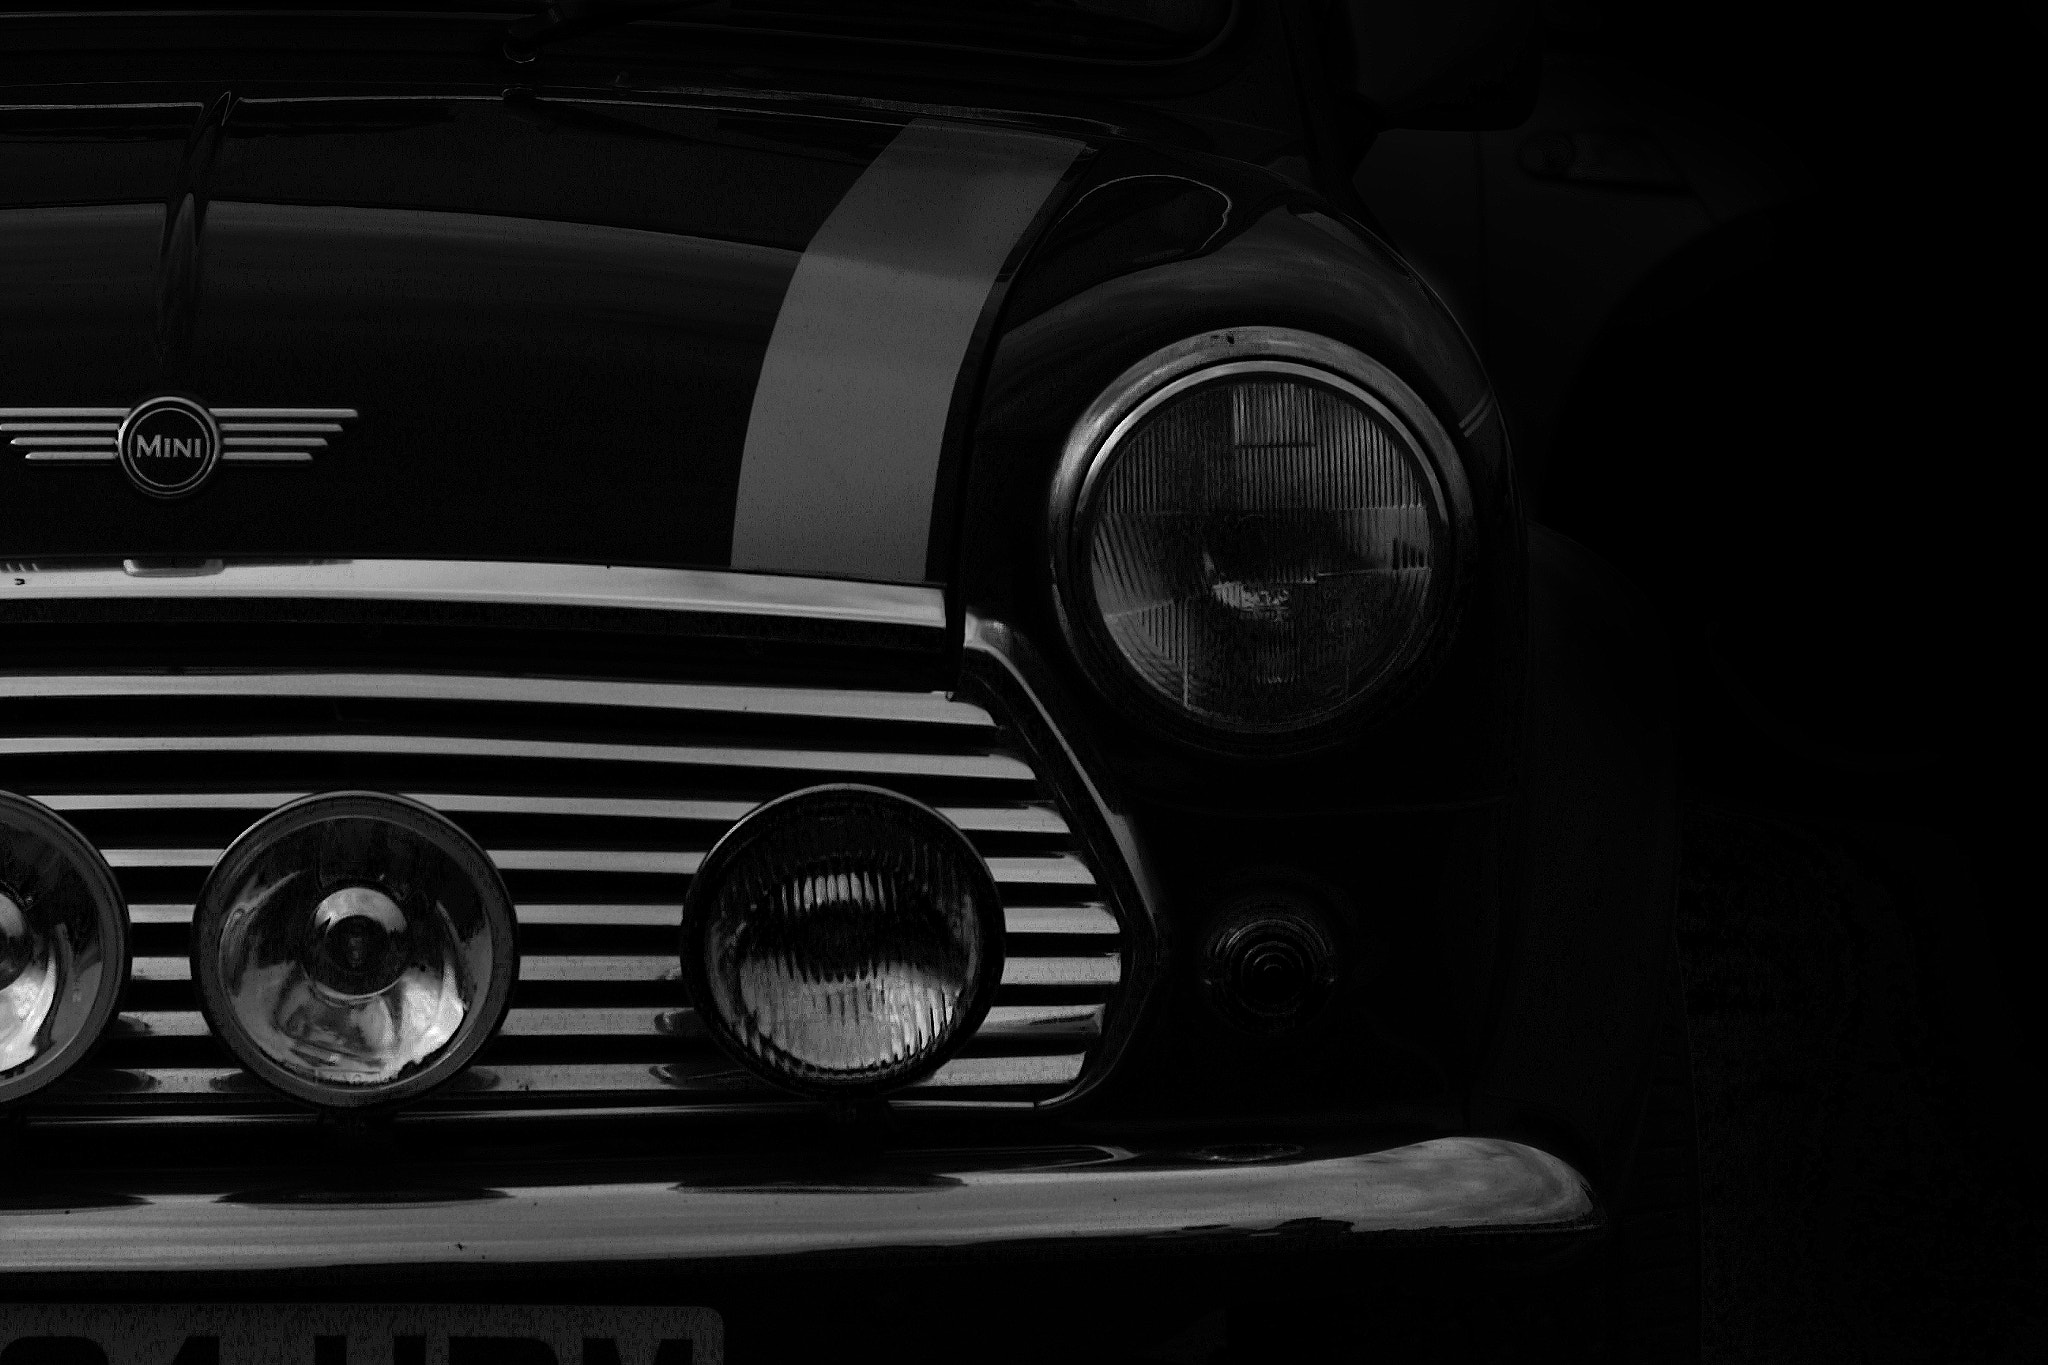 Photograph Hiding Mini by Callum Chapman on 500px